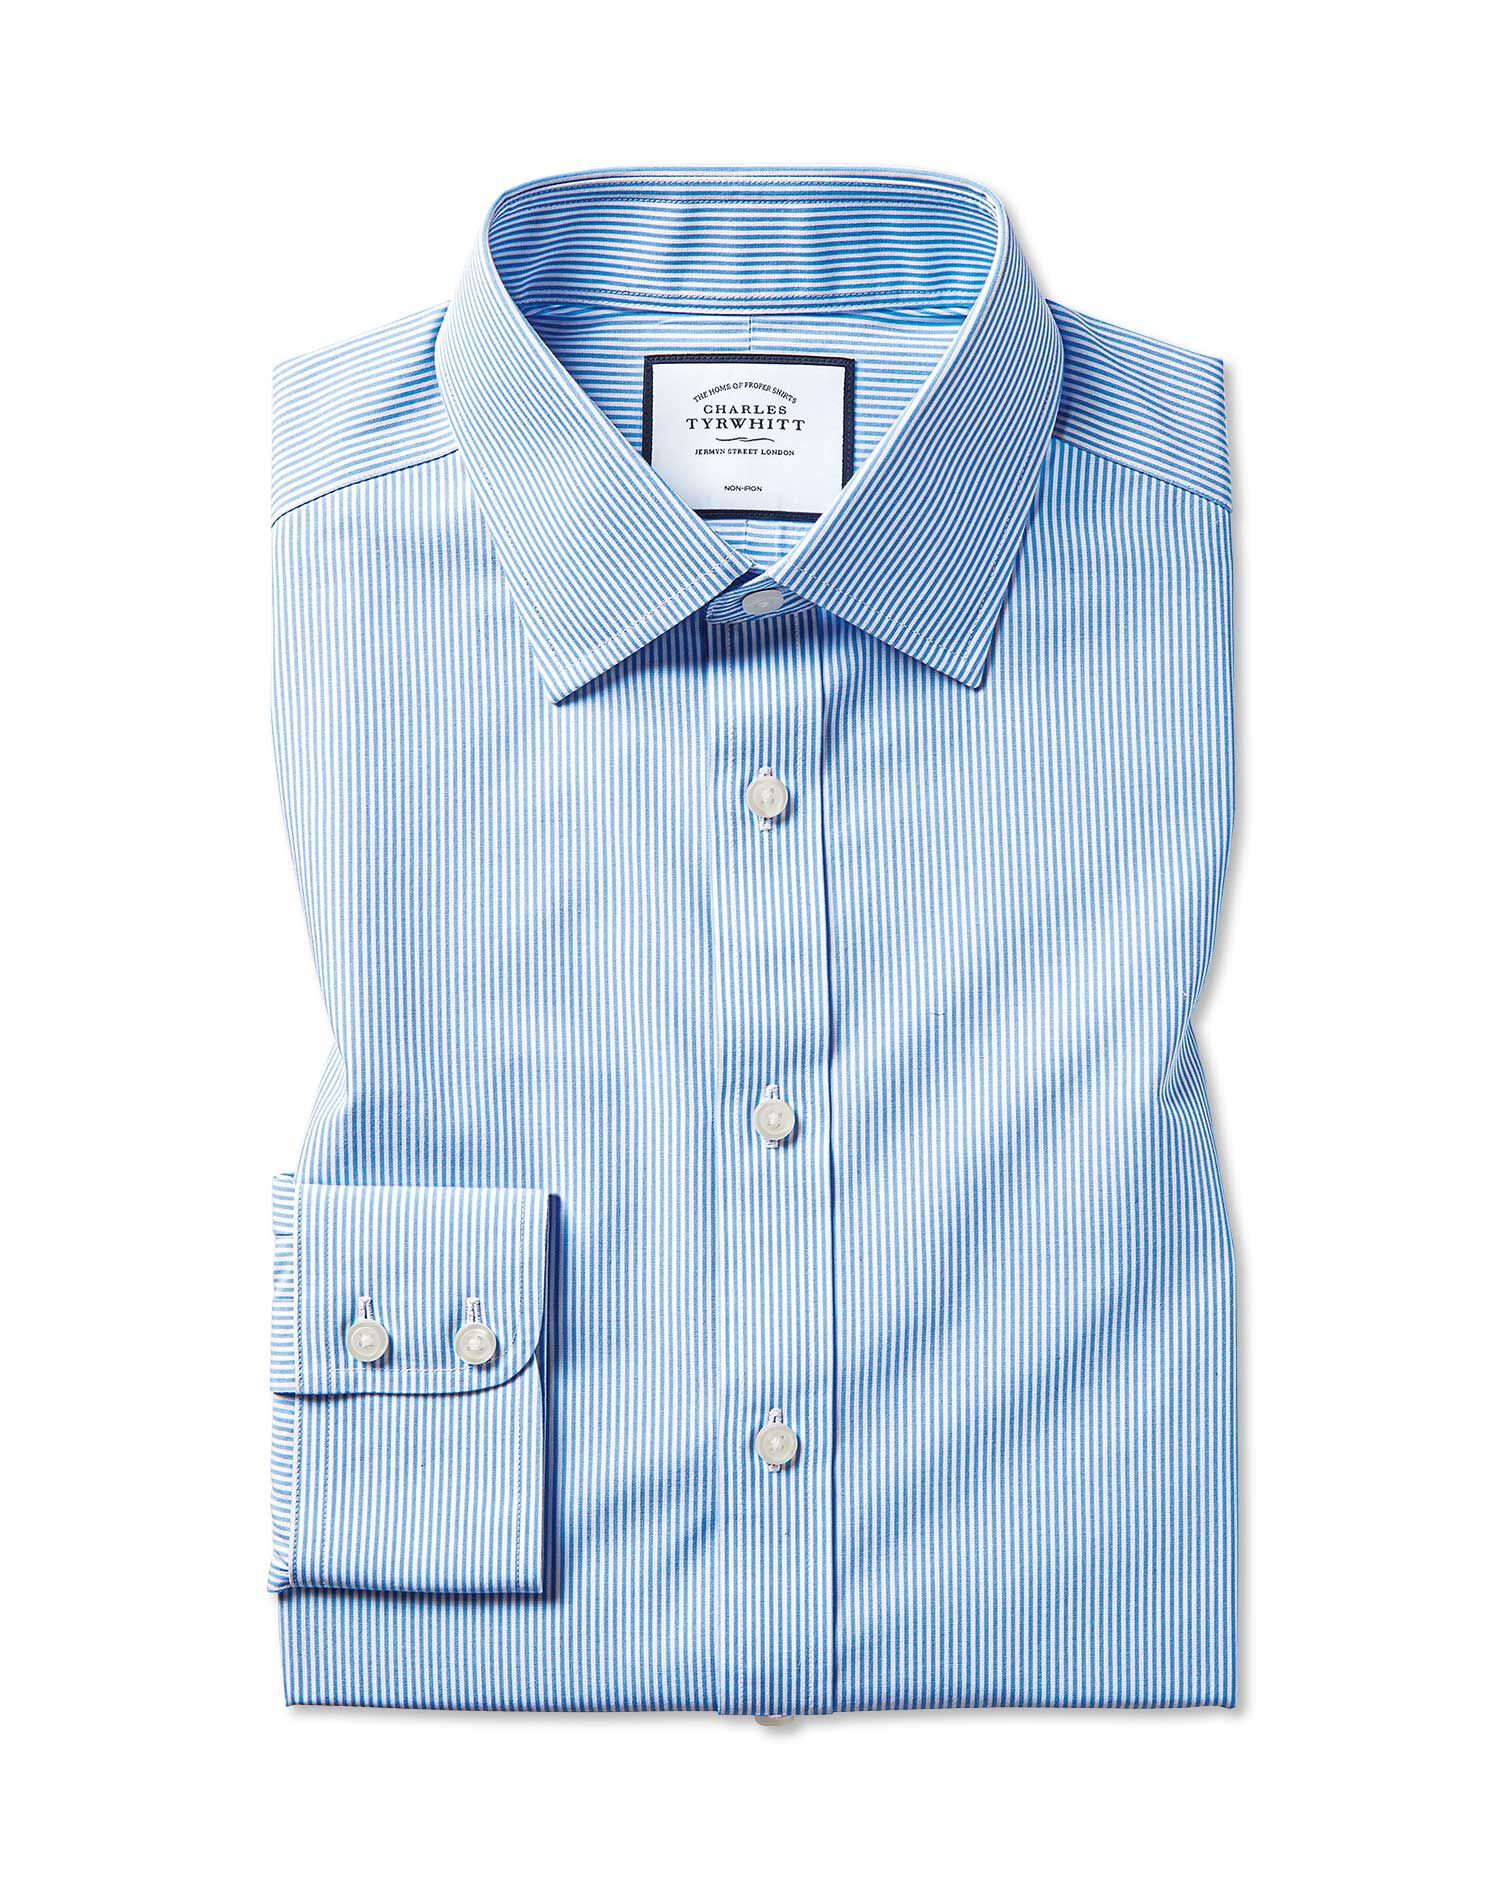 Slim Fit Non-Iron Bengal Stripe Sky Blue Cotton Formal Shirt Double Cuff Size 15.5/32 by Charles Tyr